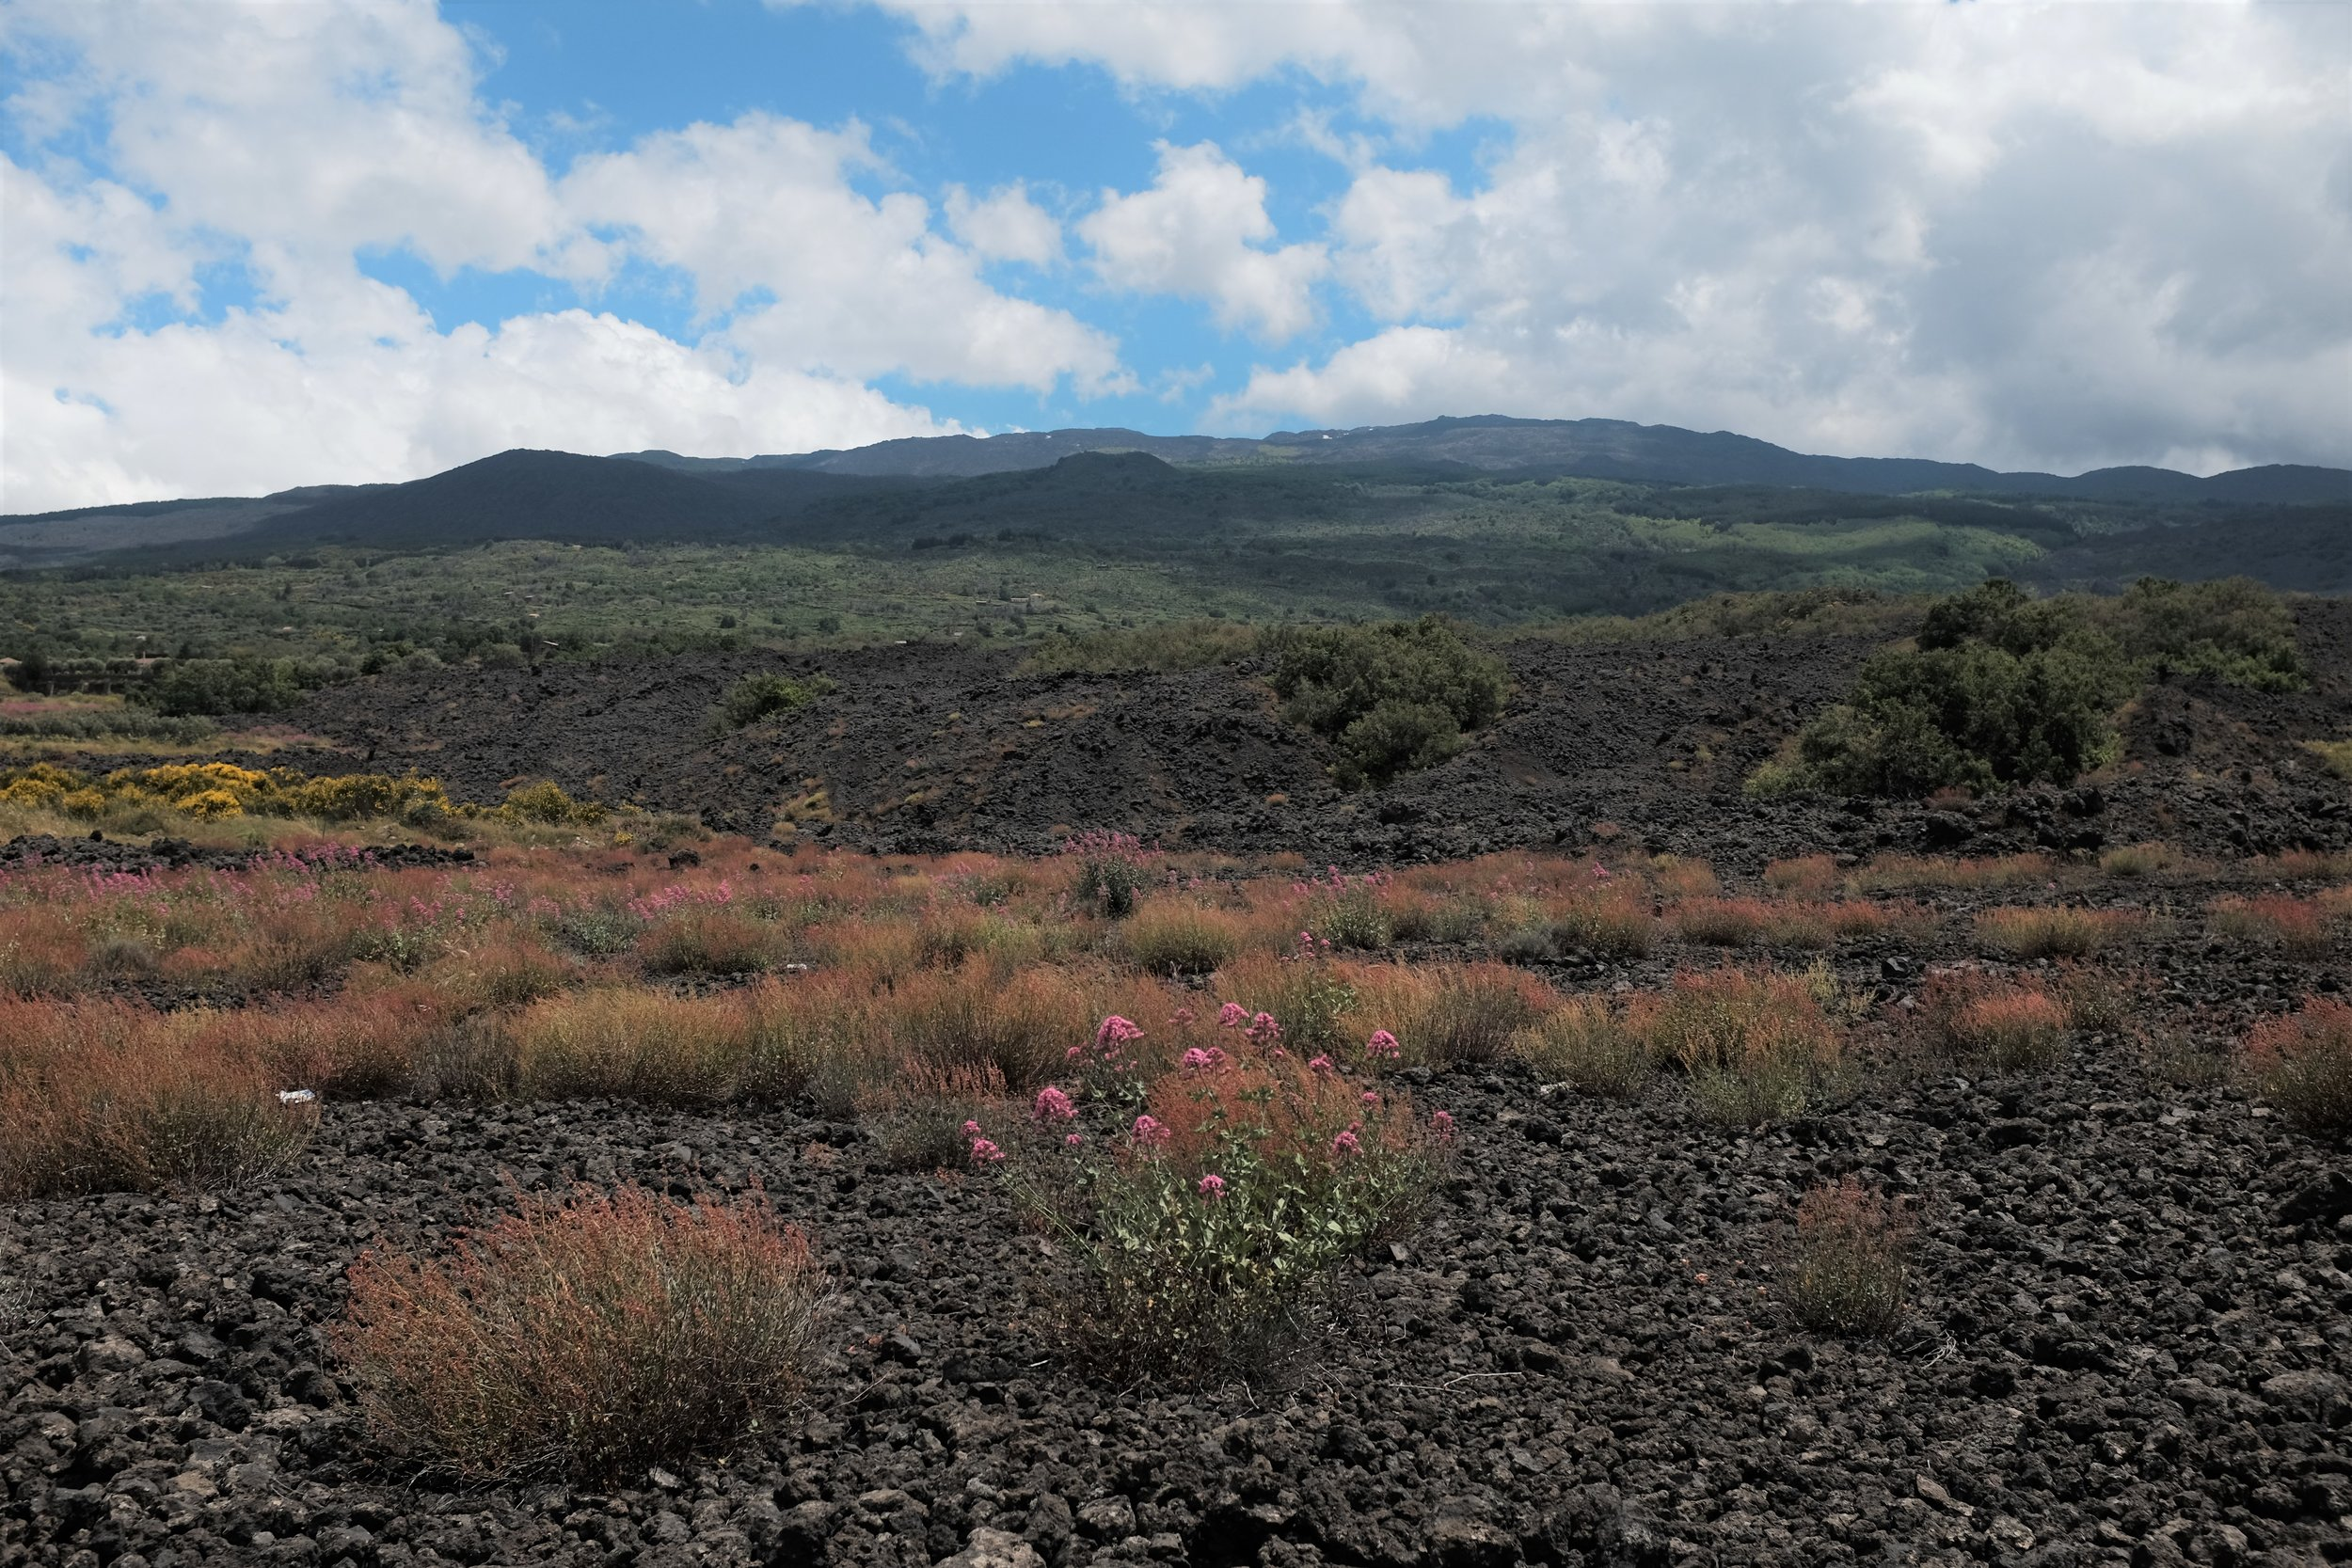 The volcanic landscape of the northern slope of Mt Etna